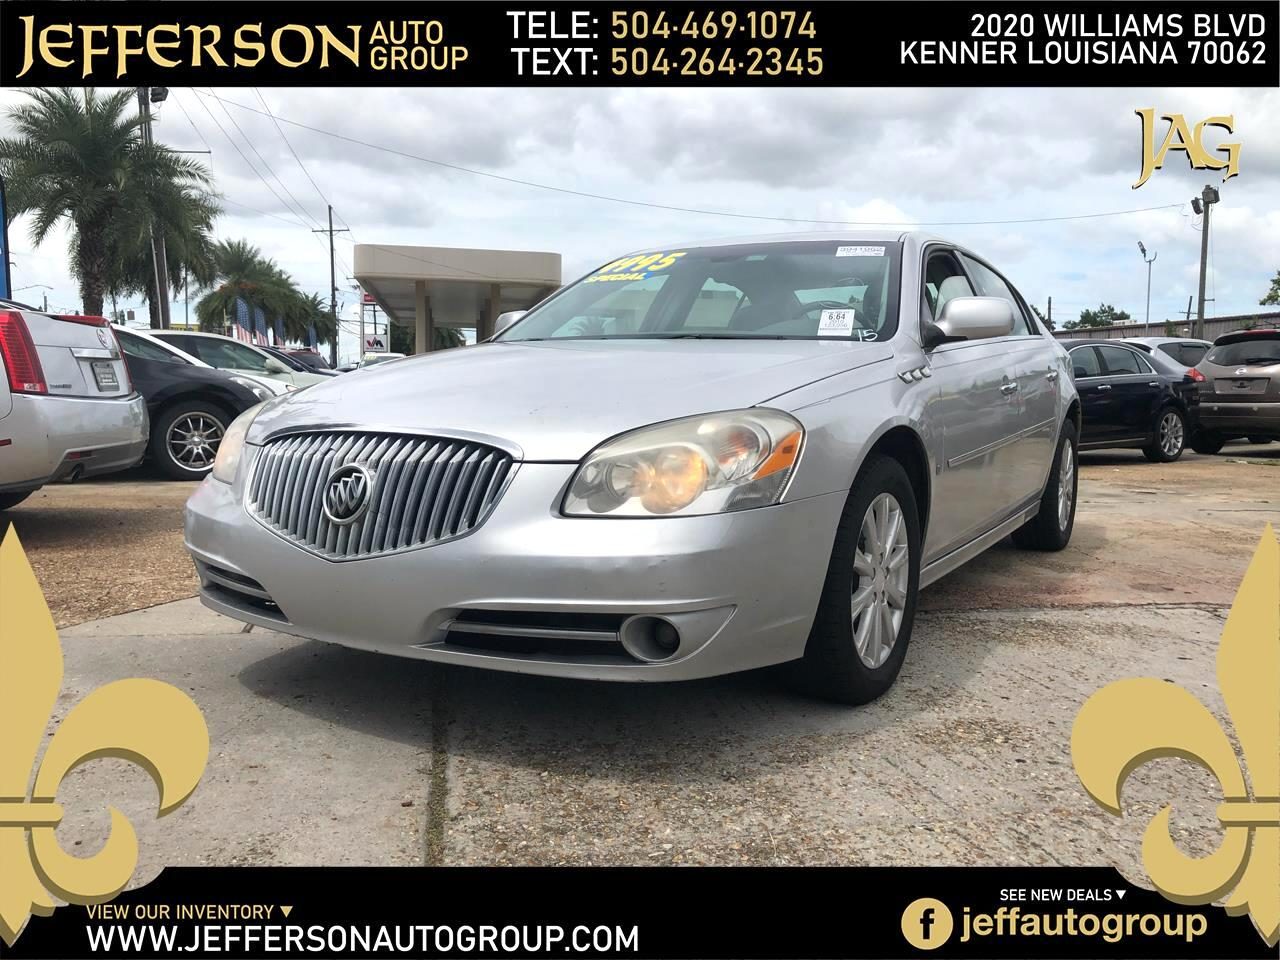 Buick Lucerne 4dr Sdn CX 2010